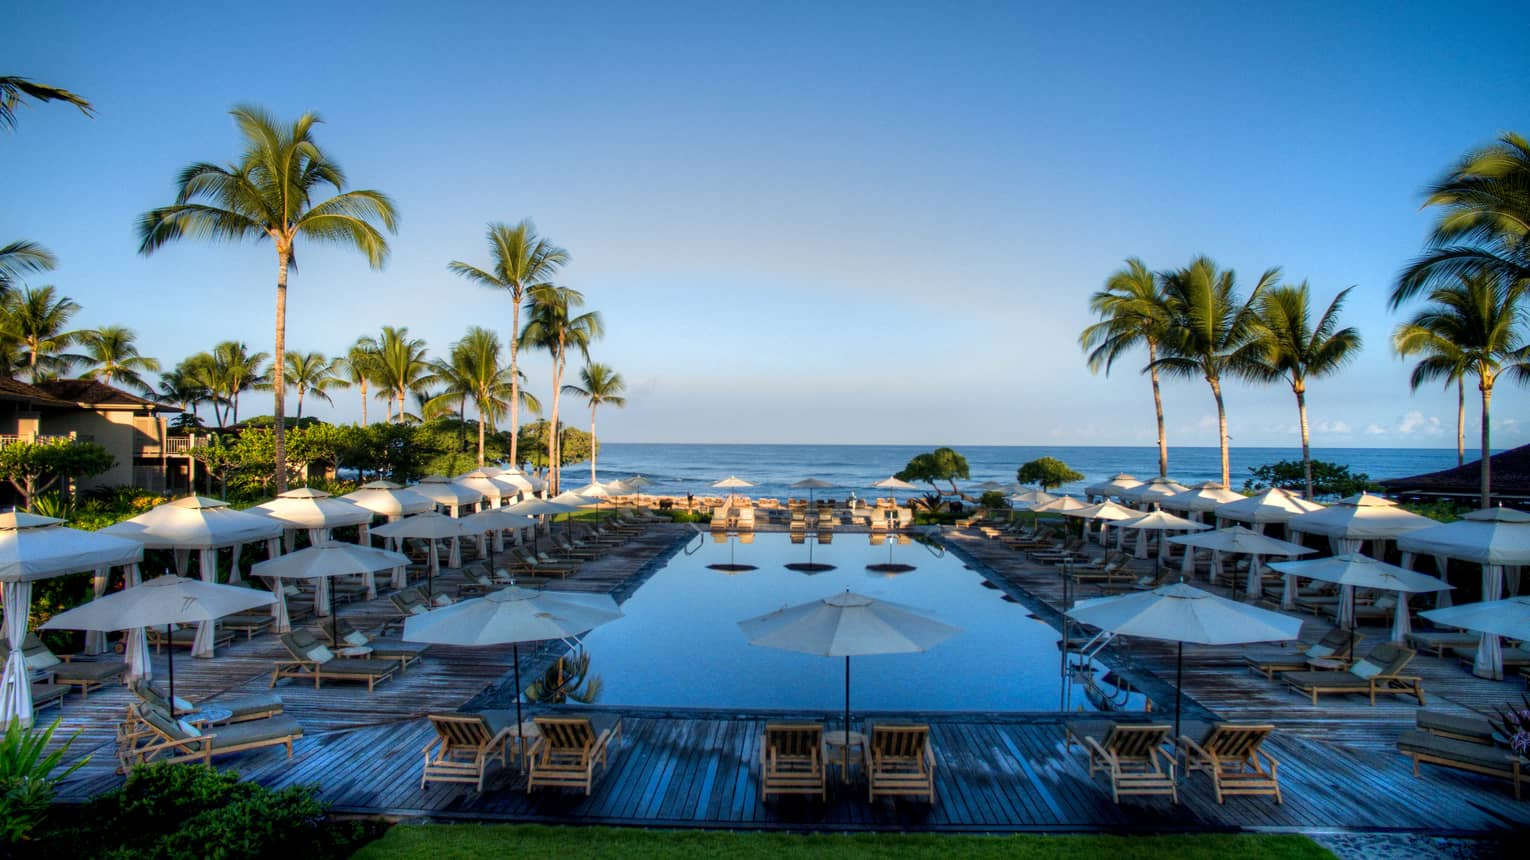 White cabanas, patio chairs and umbrellas line outdoor Beach Tree Pool under tall palms